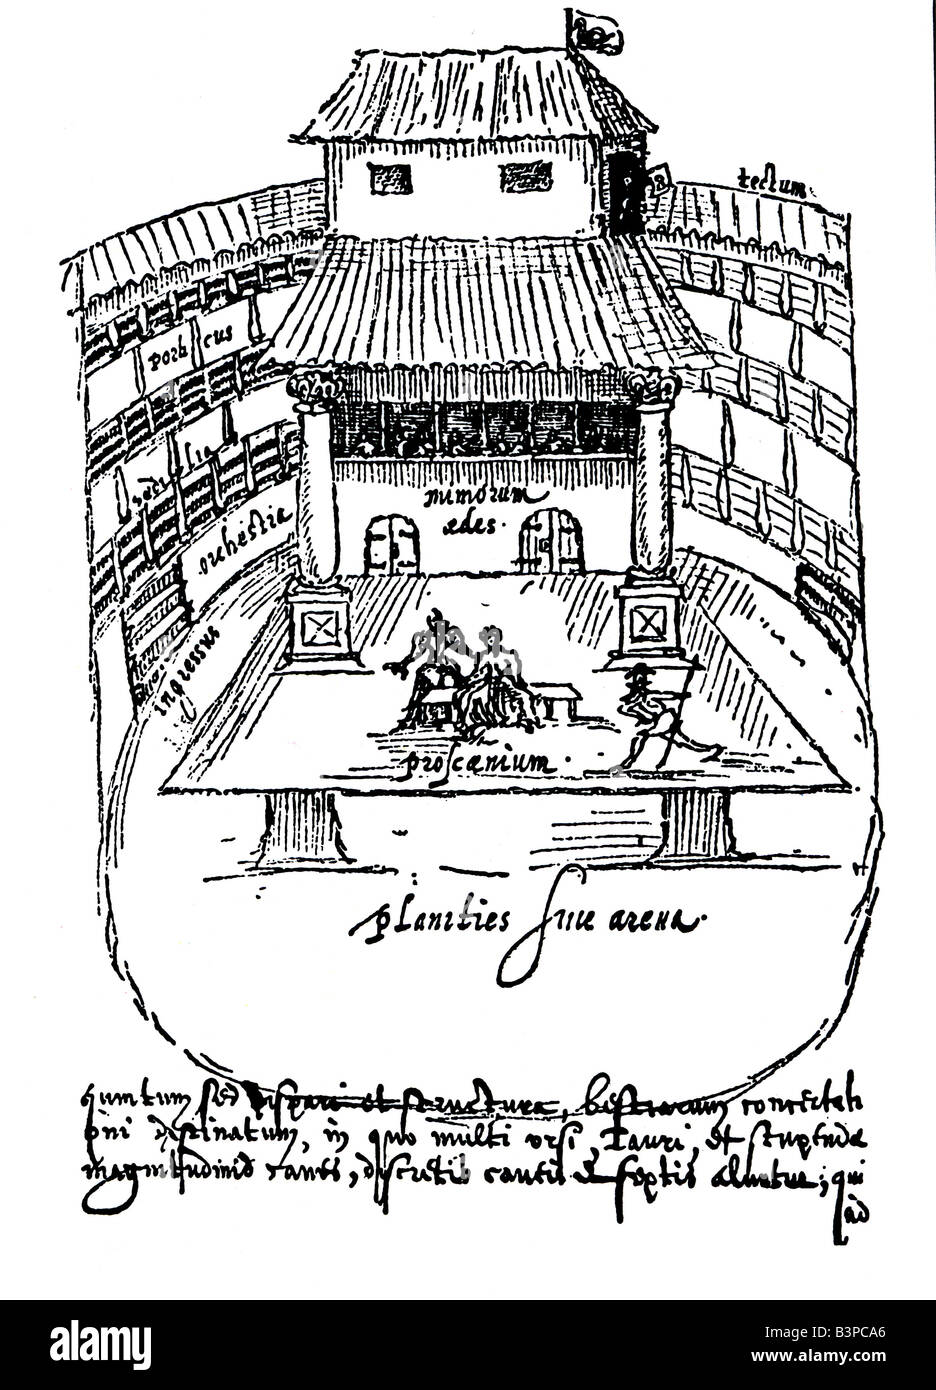 SWAN THEATRE in Southwark, London, drawn by Johannes De Witt about 1596 - the only contemporary drawing of an Elizabethan - Stock Image